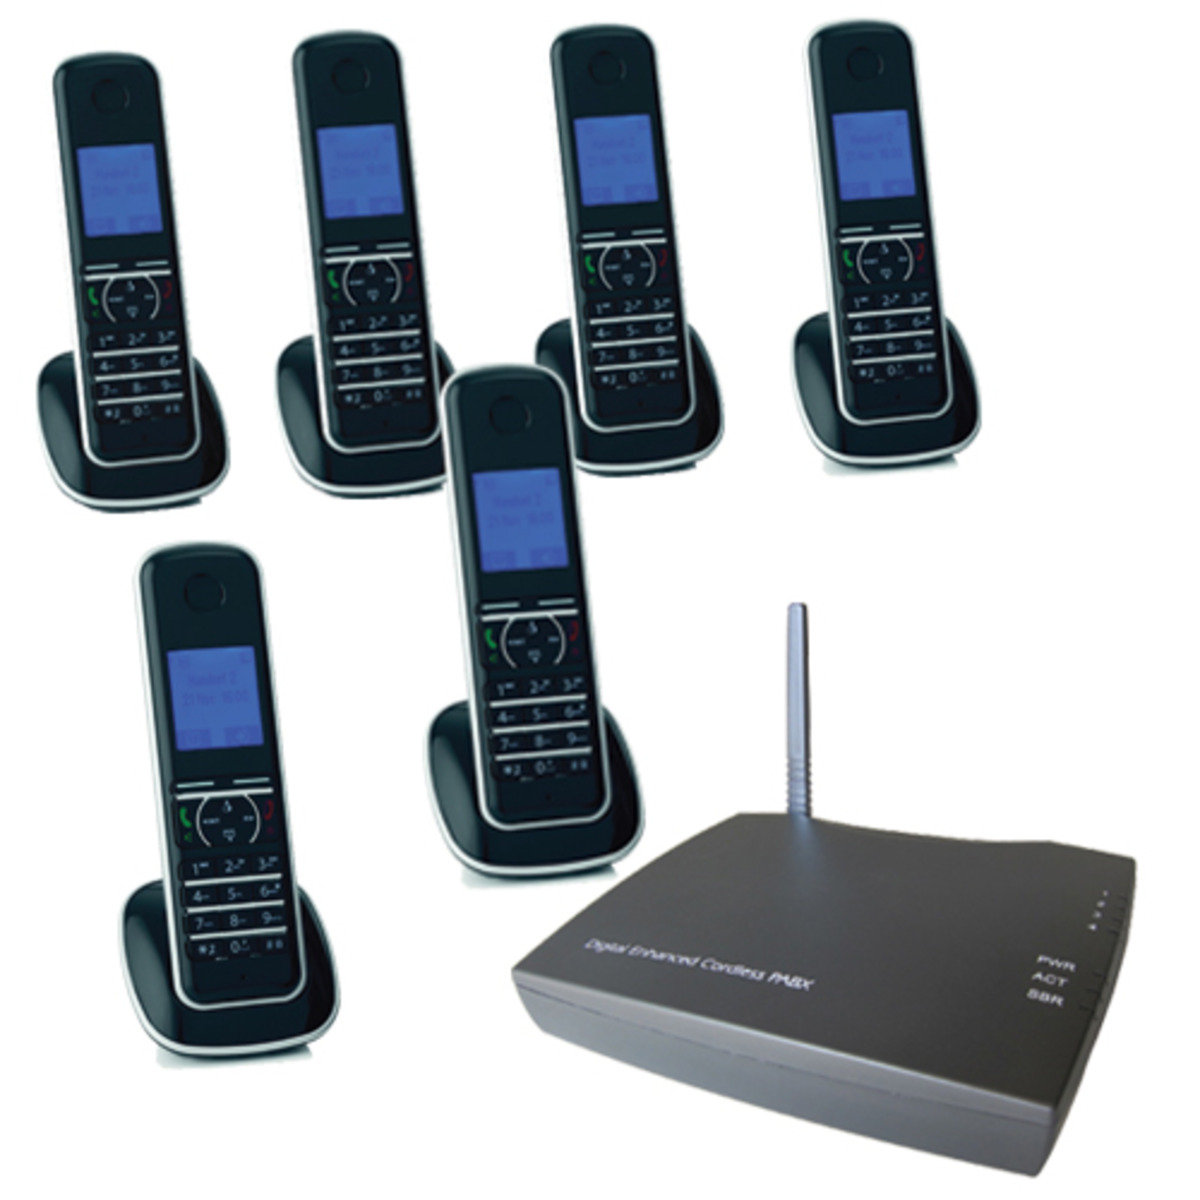 UT300-6HS Digital Cordless Phone Systems (includes 6 Digital Telephone Handsets)